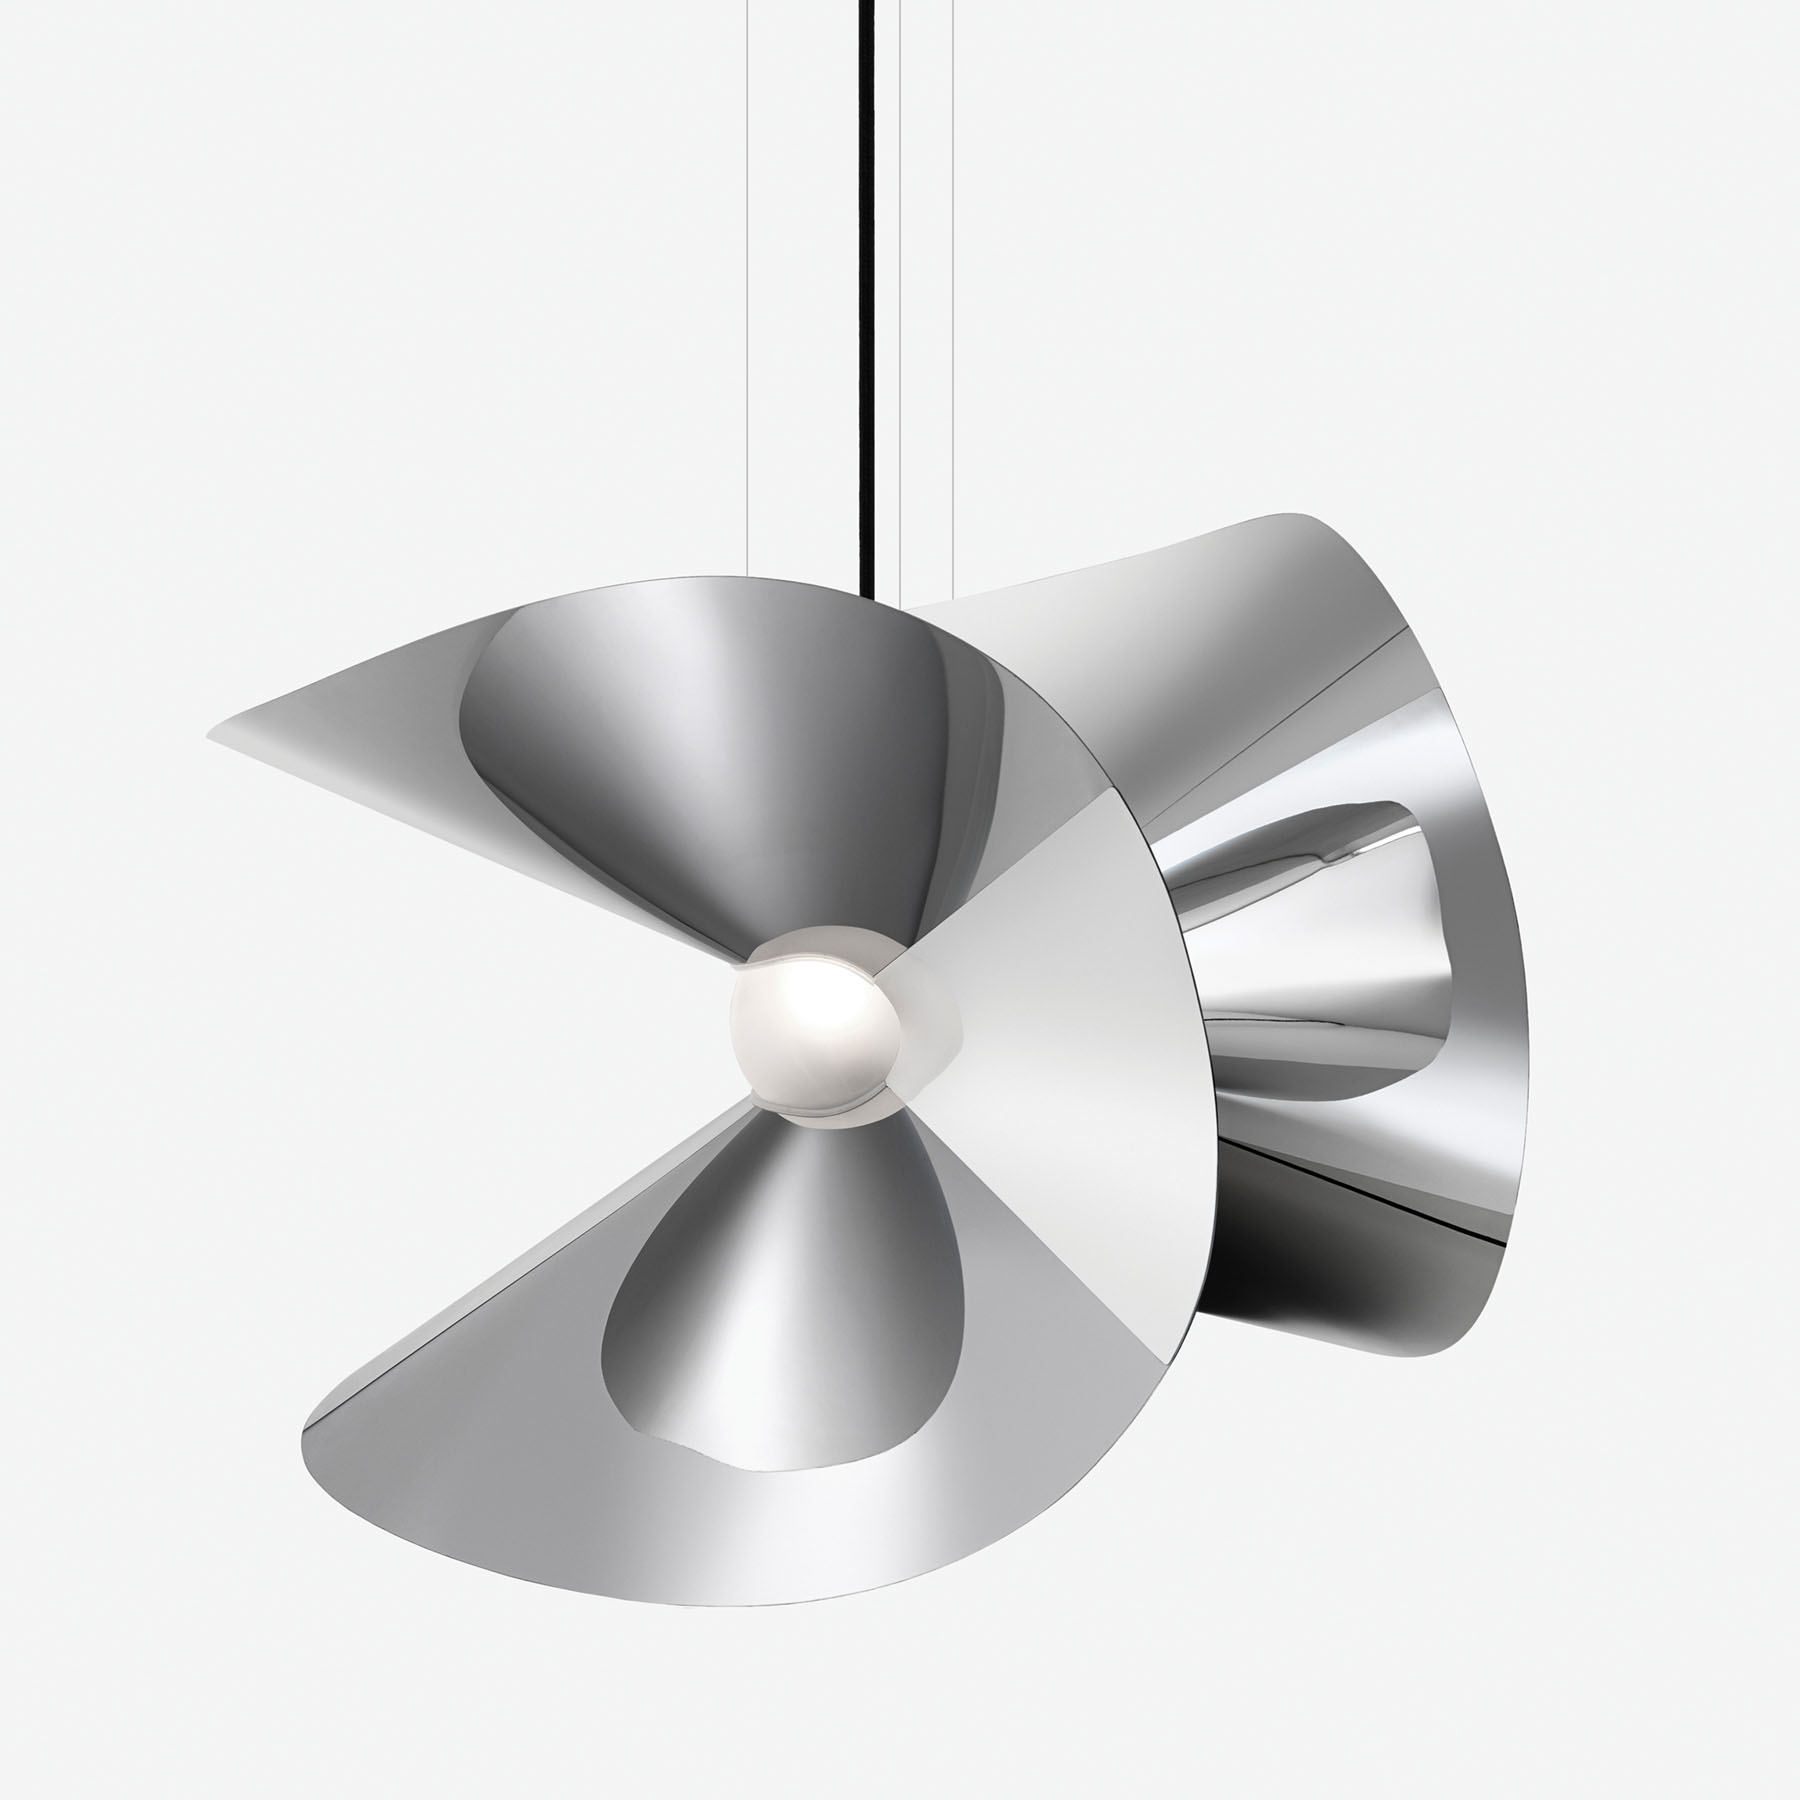 Mariposa, a table lamp doubling as a suspended lighting fixture